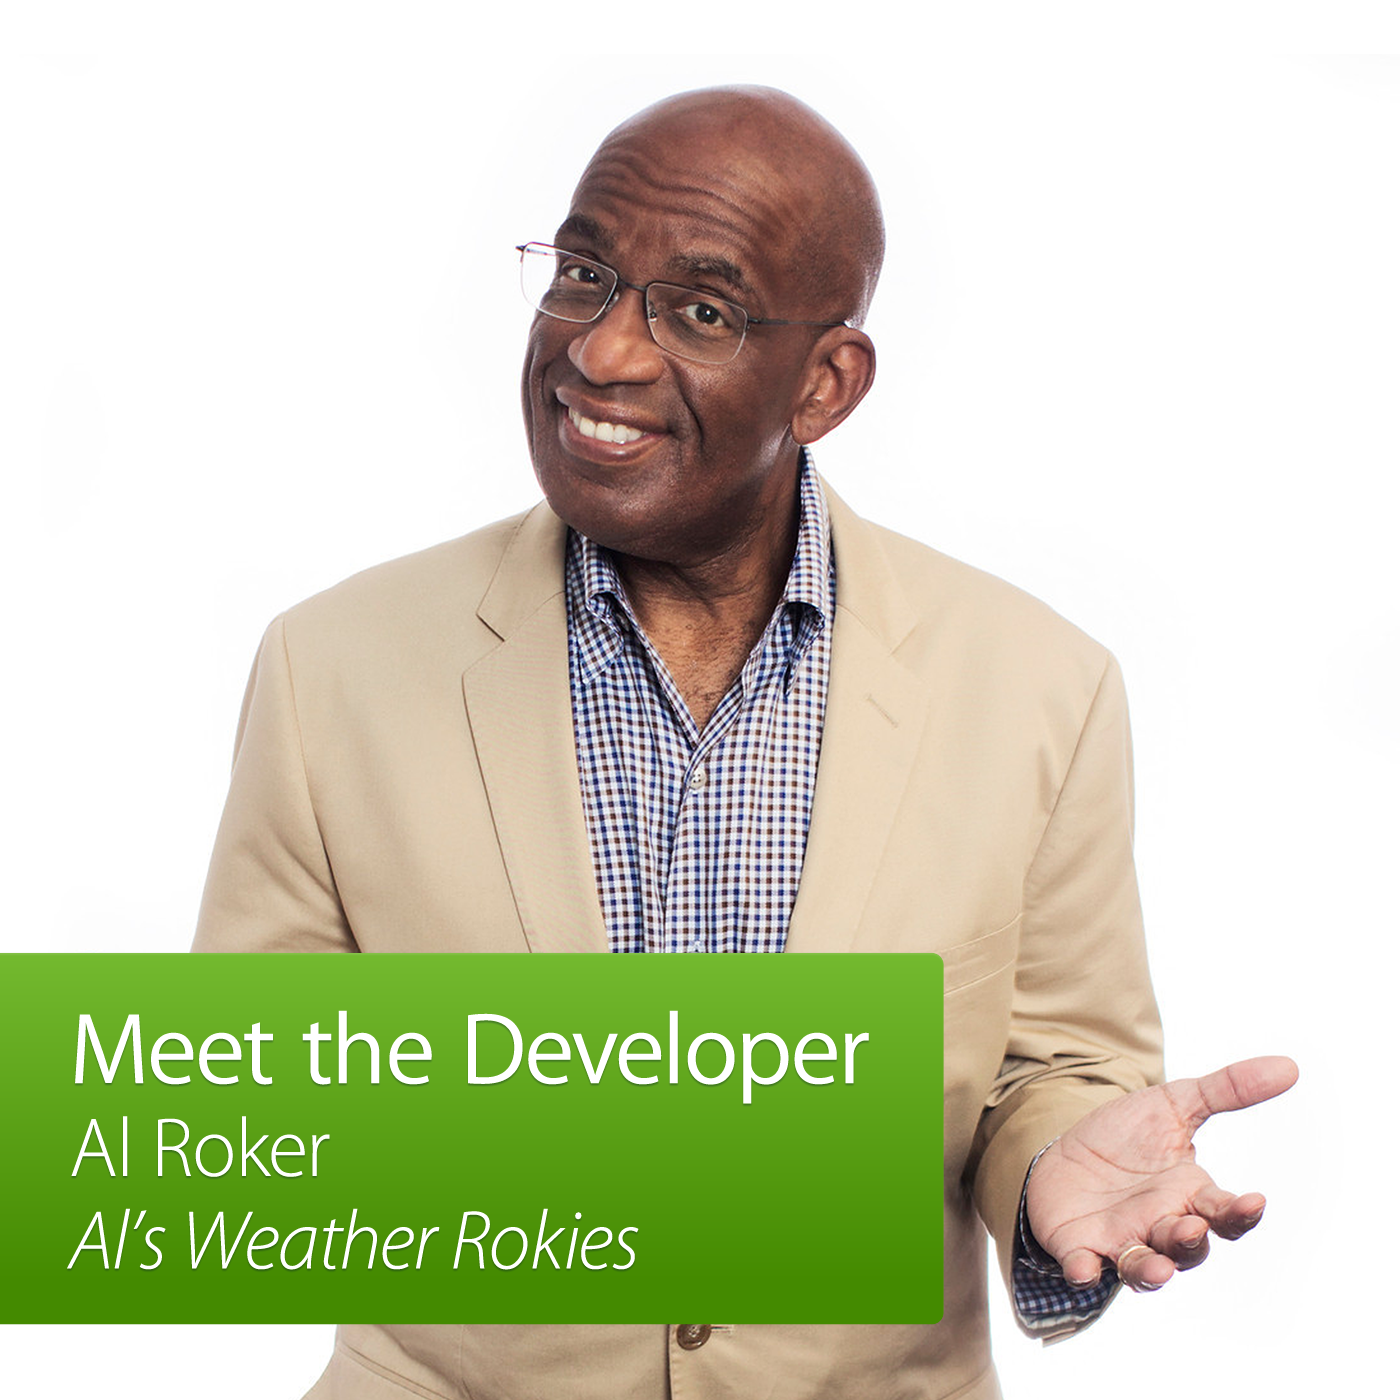 Al Roker: Meet the Developer